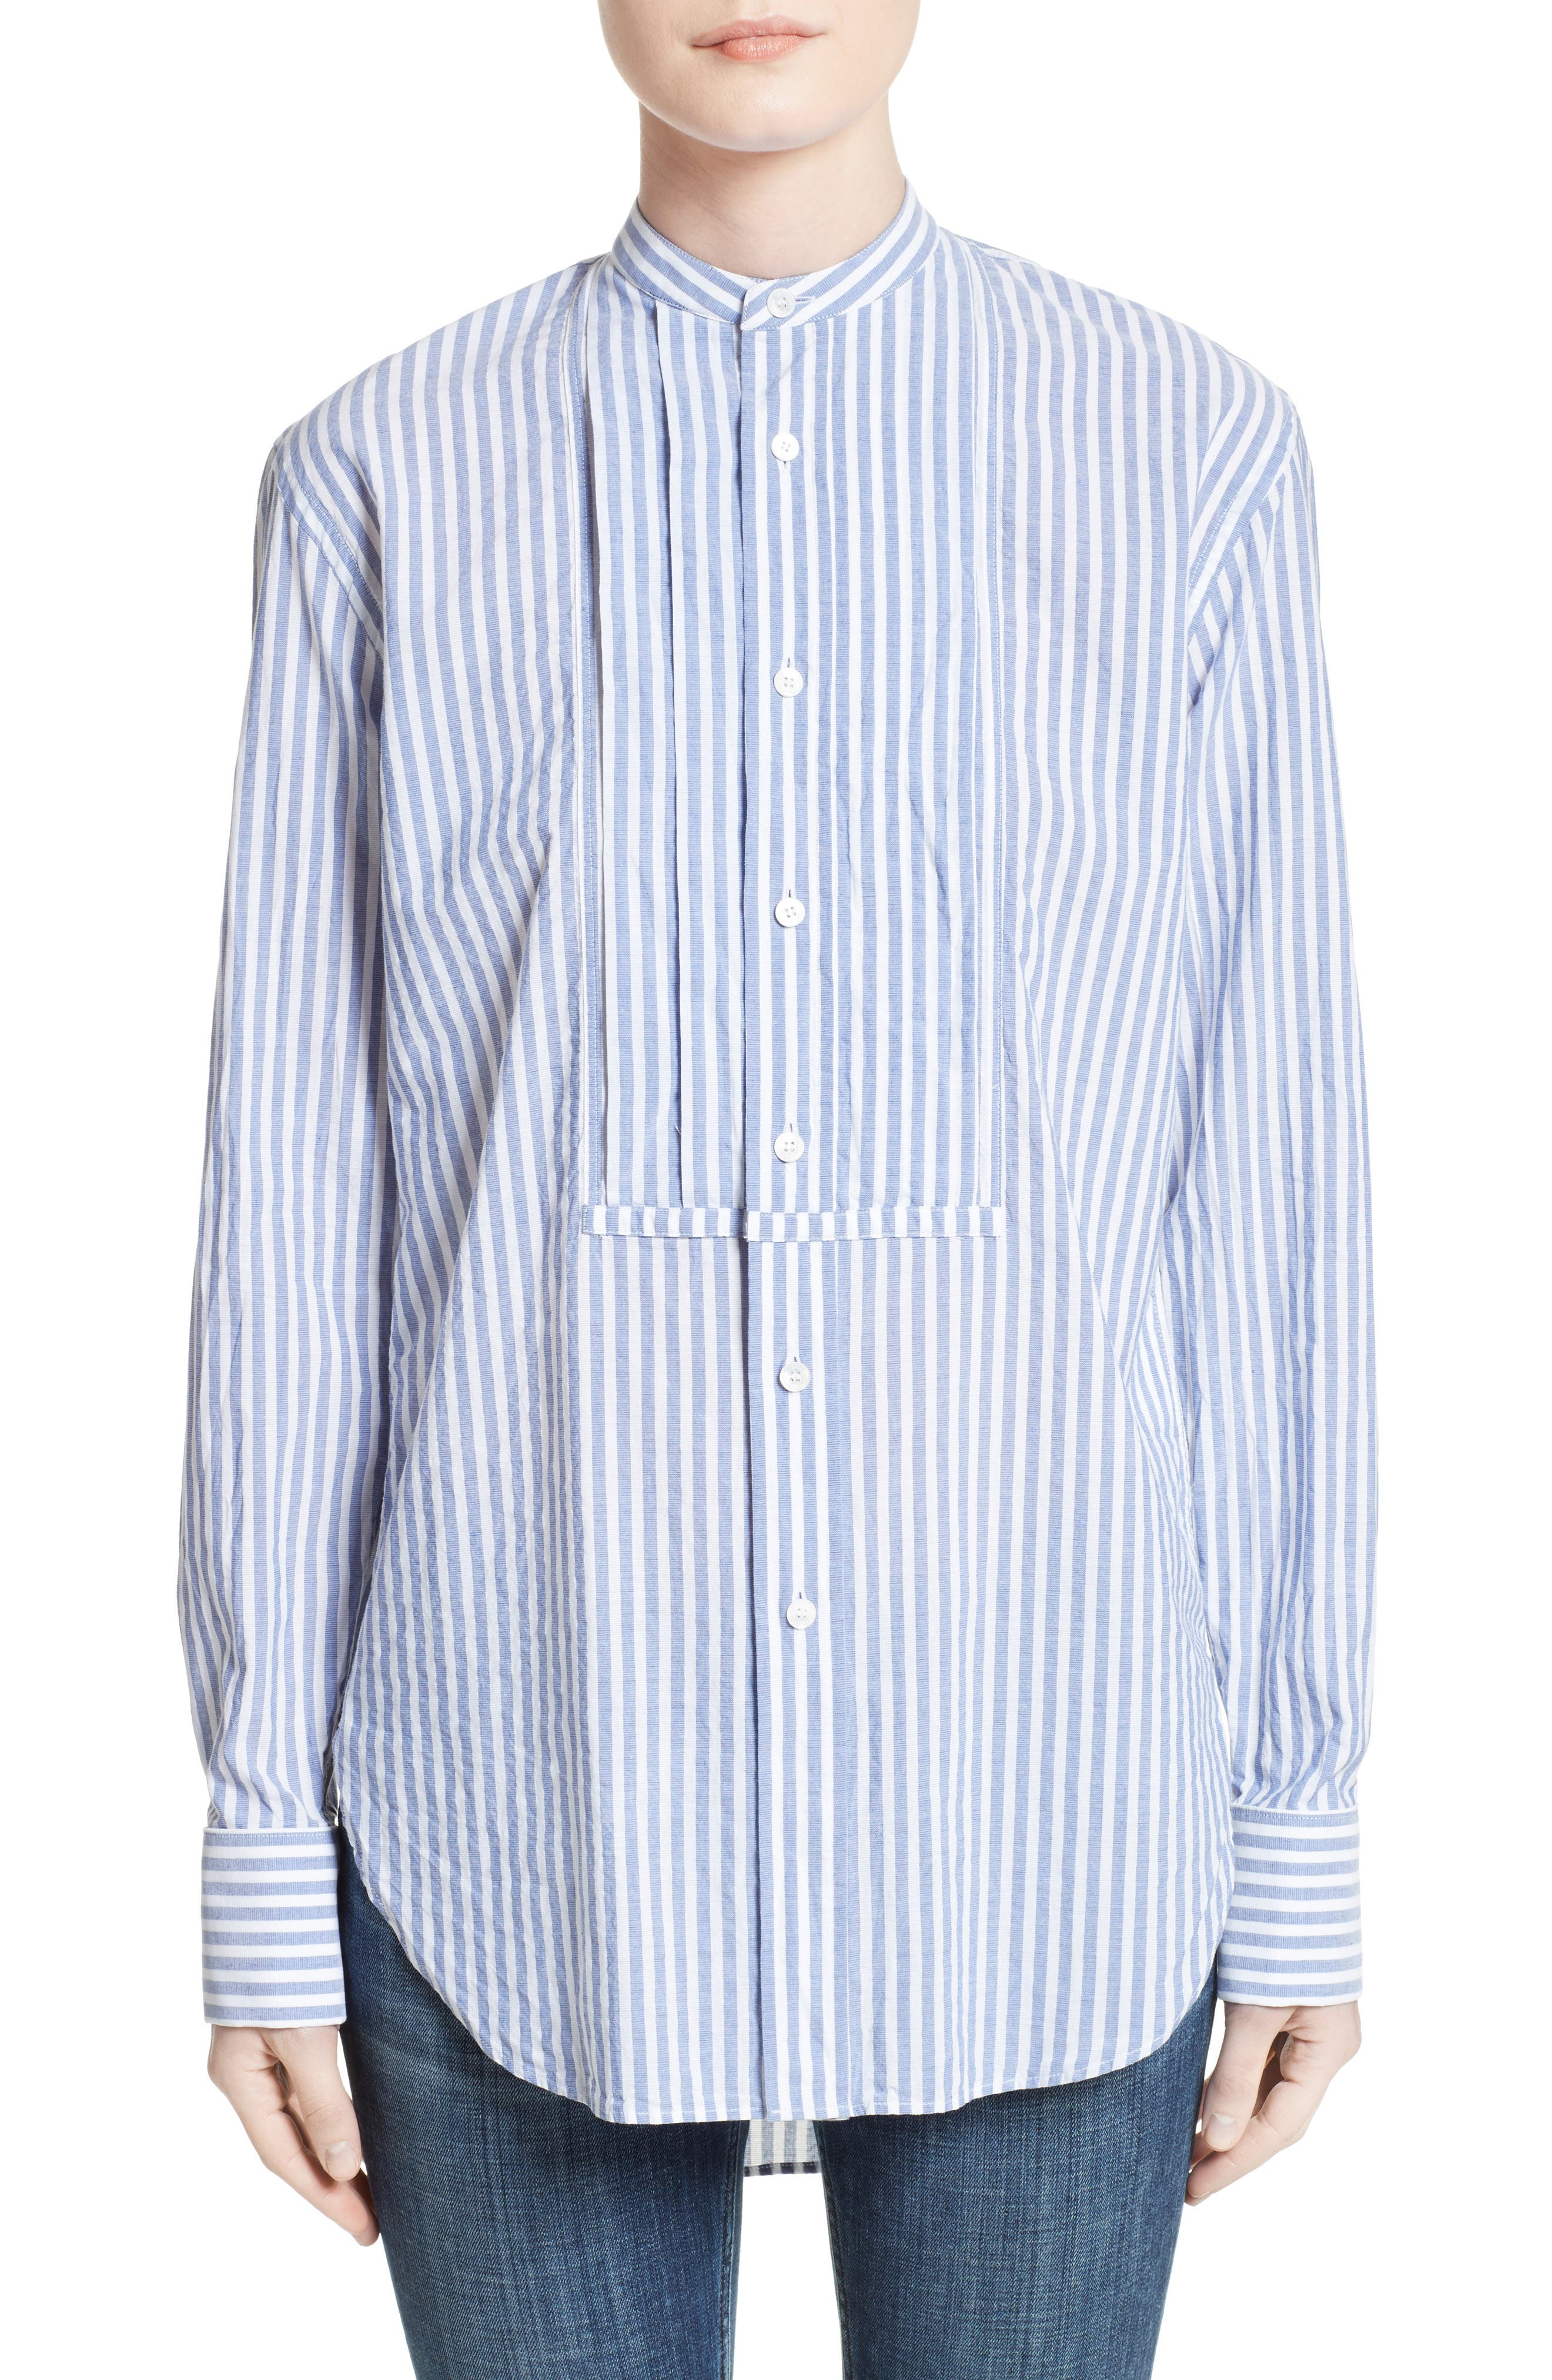 Benfleet Stripe Cotton Top,                         Main,                         color, 456